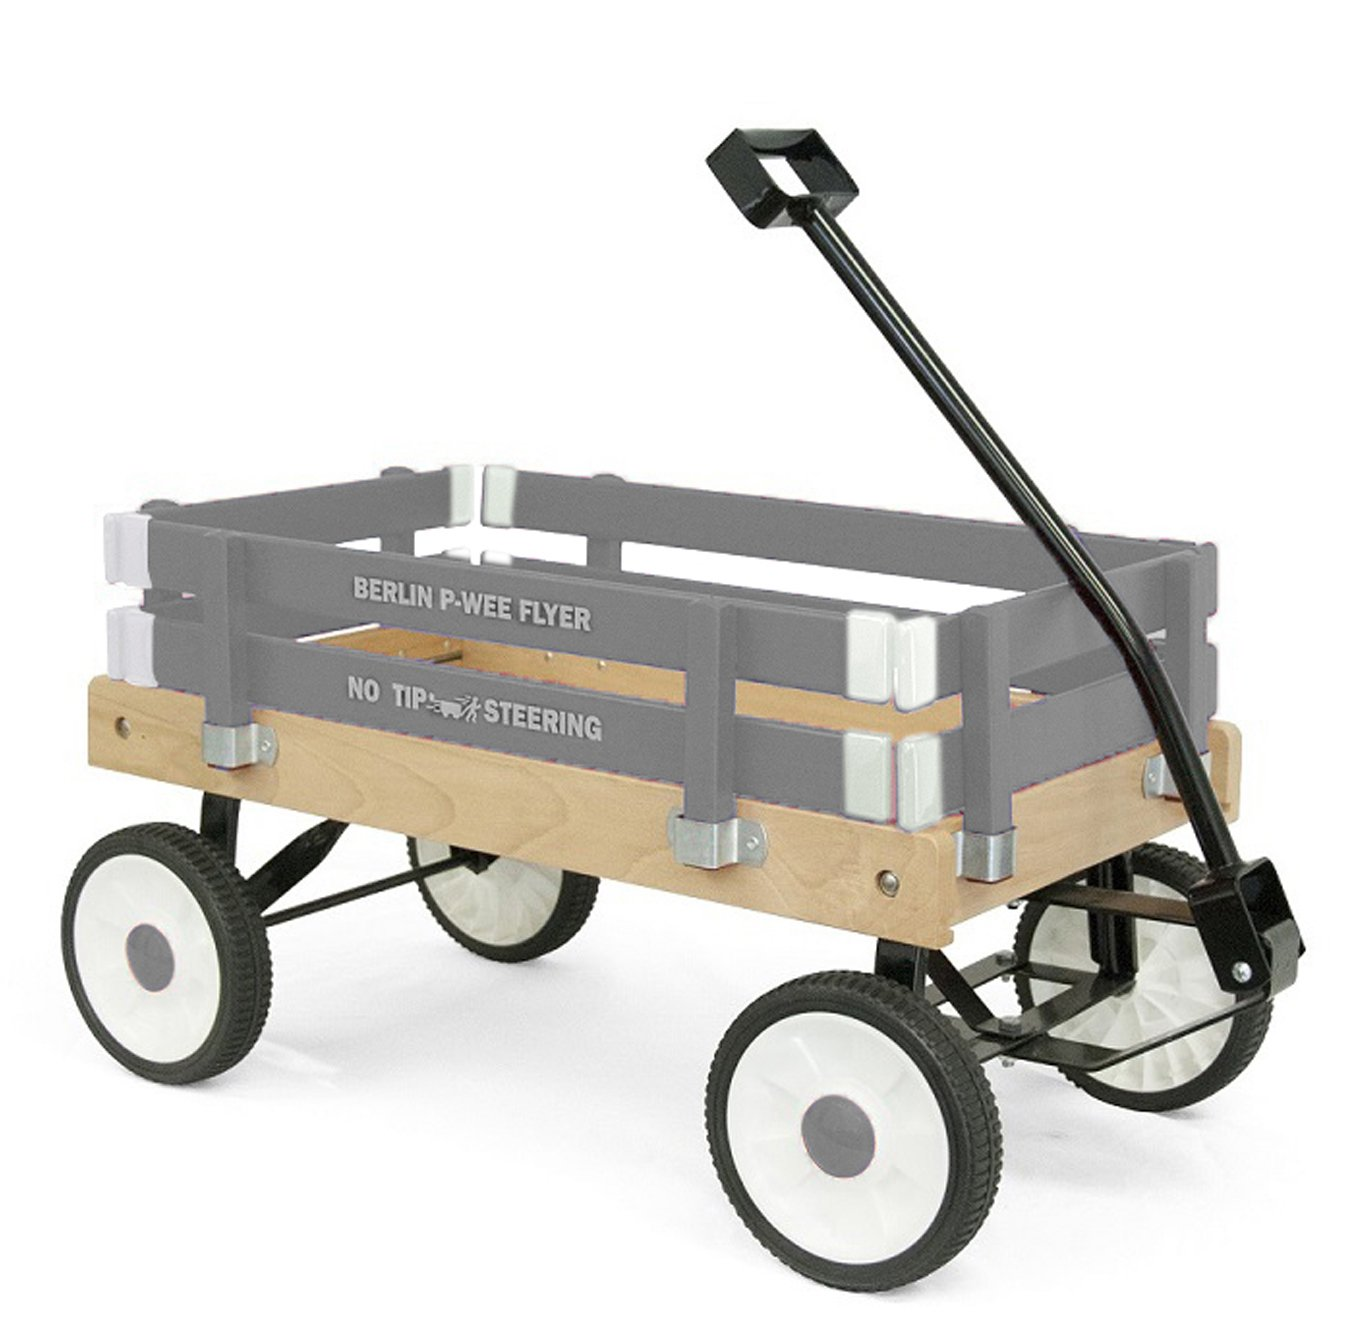 Berlin F257 Amish-Made Pee-Wee Flyer Ride-On Wagon, Gray by Berlin